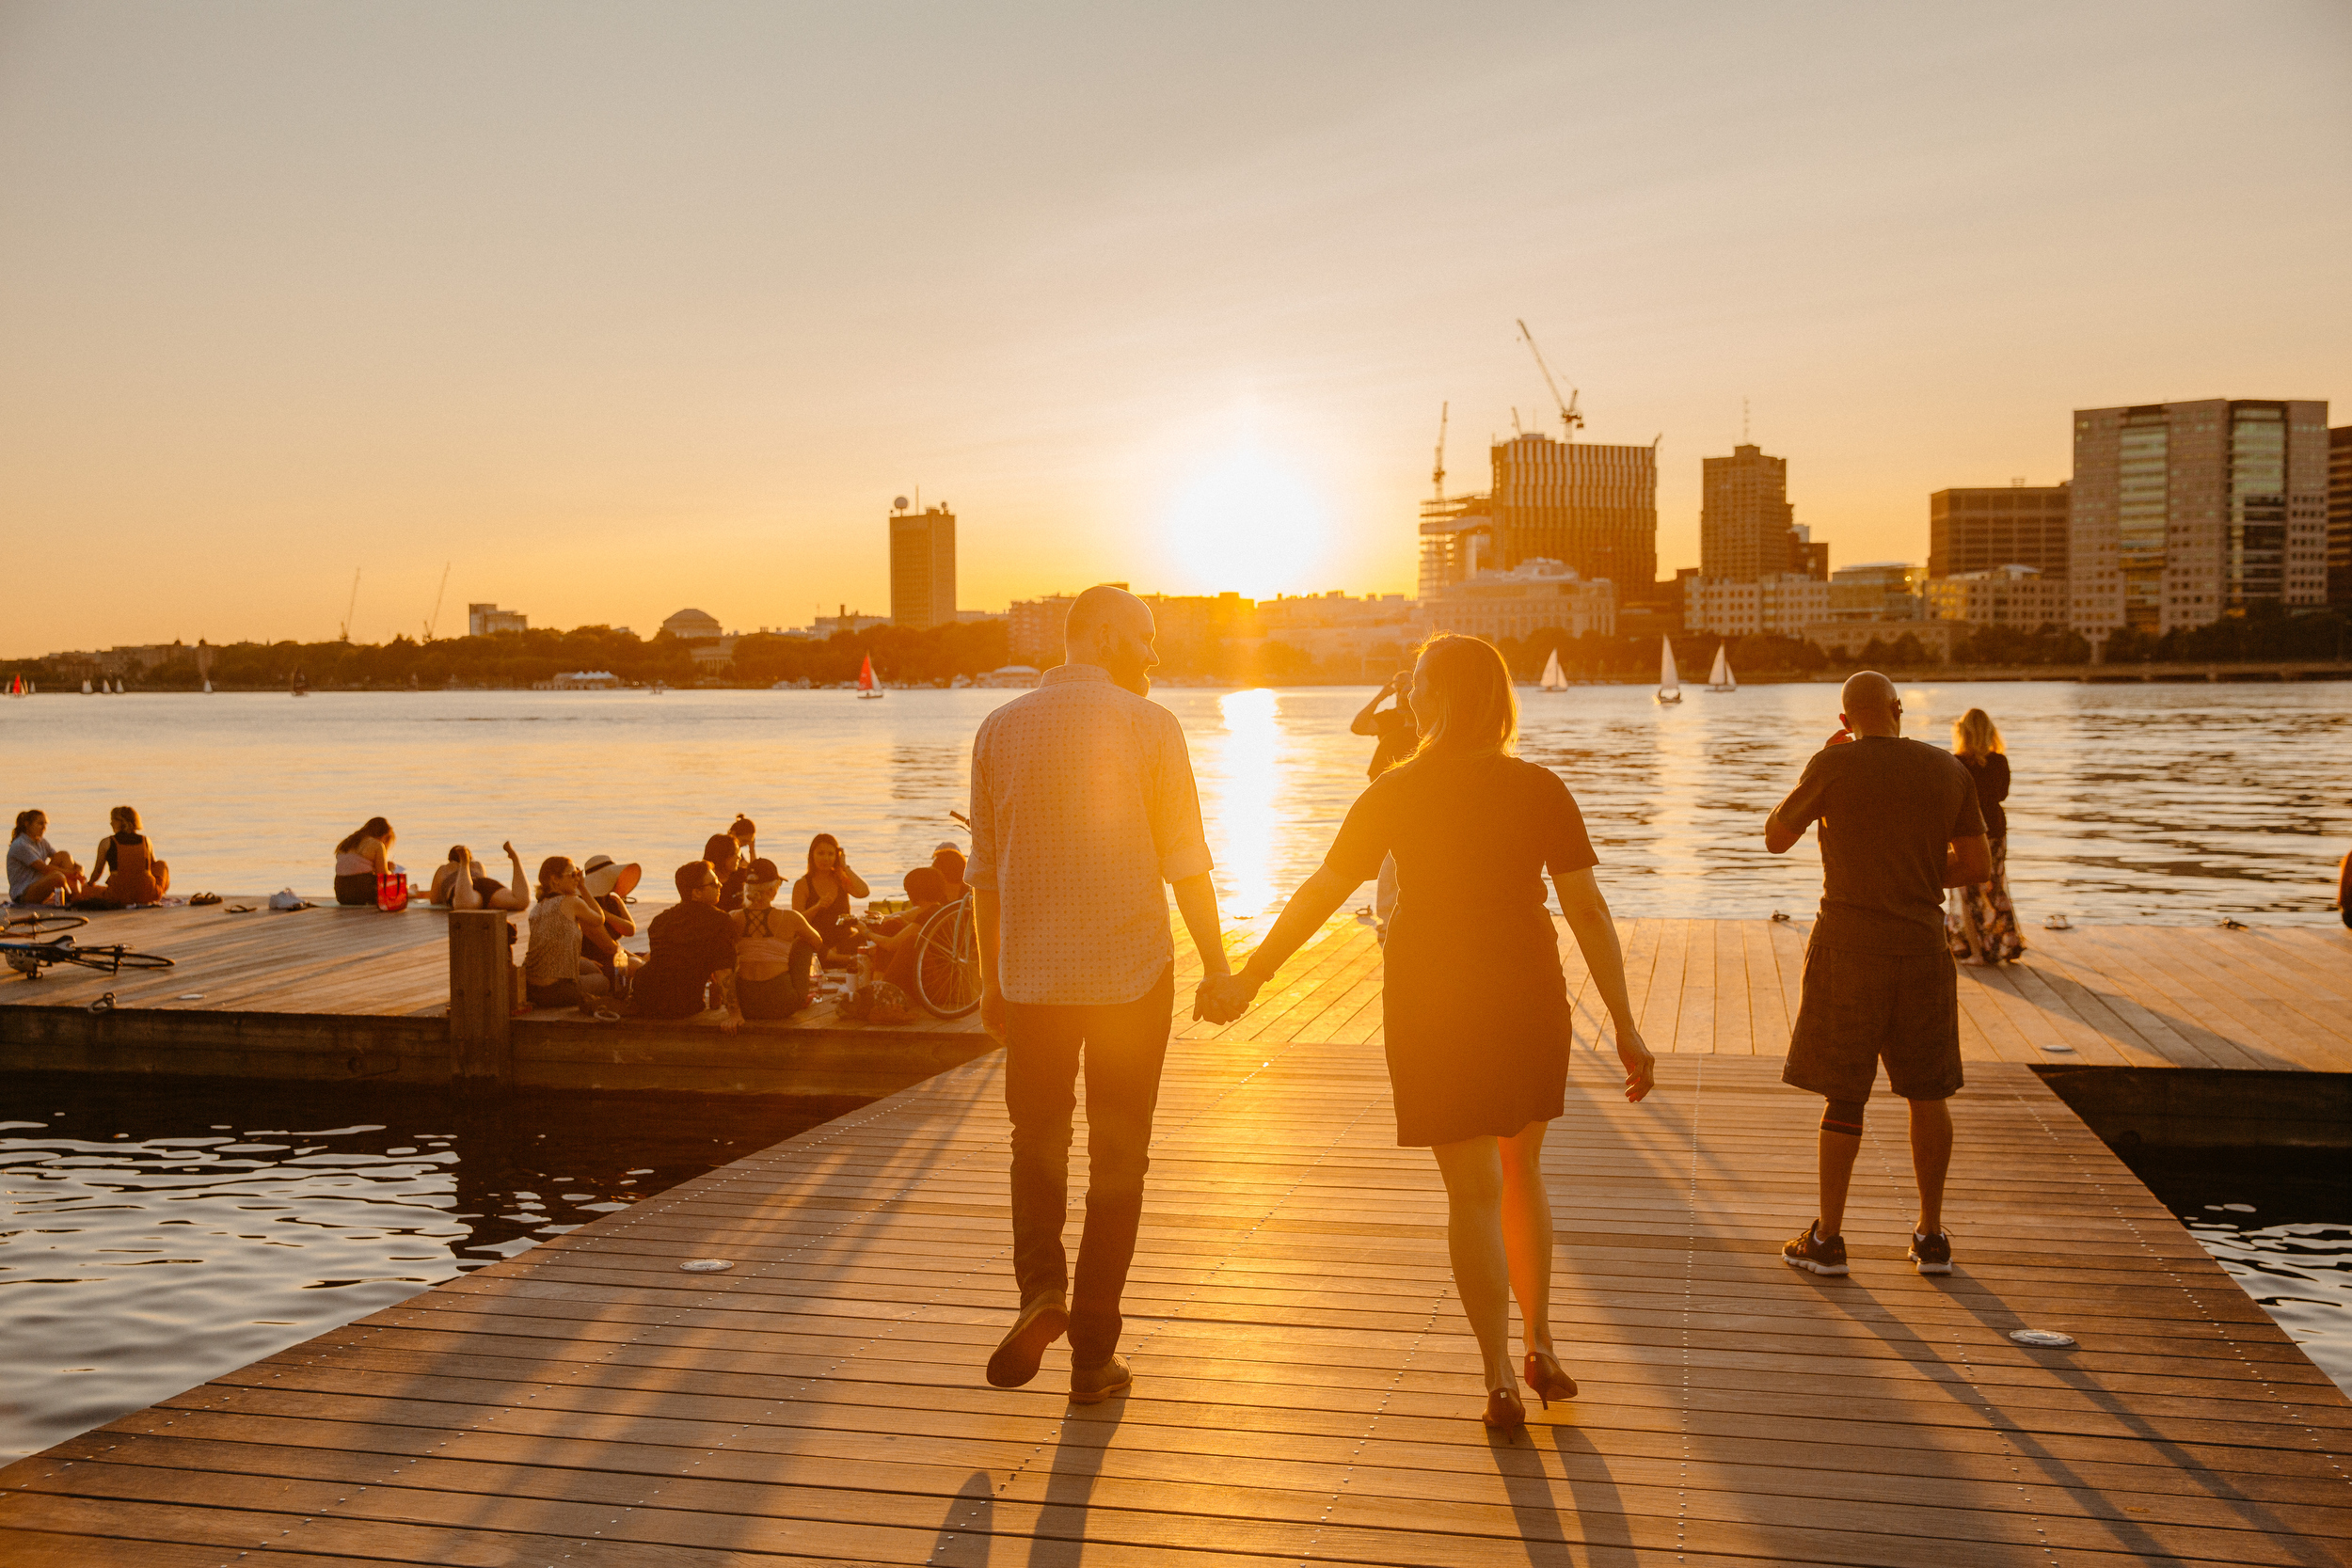 stunning golden sunset on the docks at the charles river esplande in downtown boston